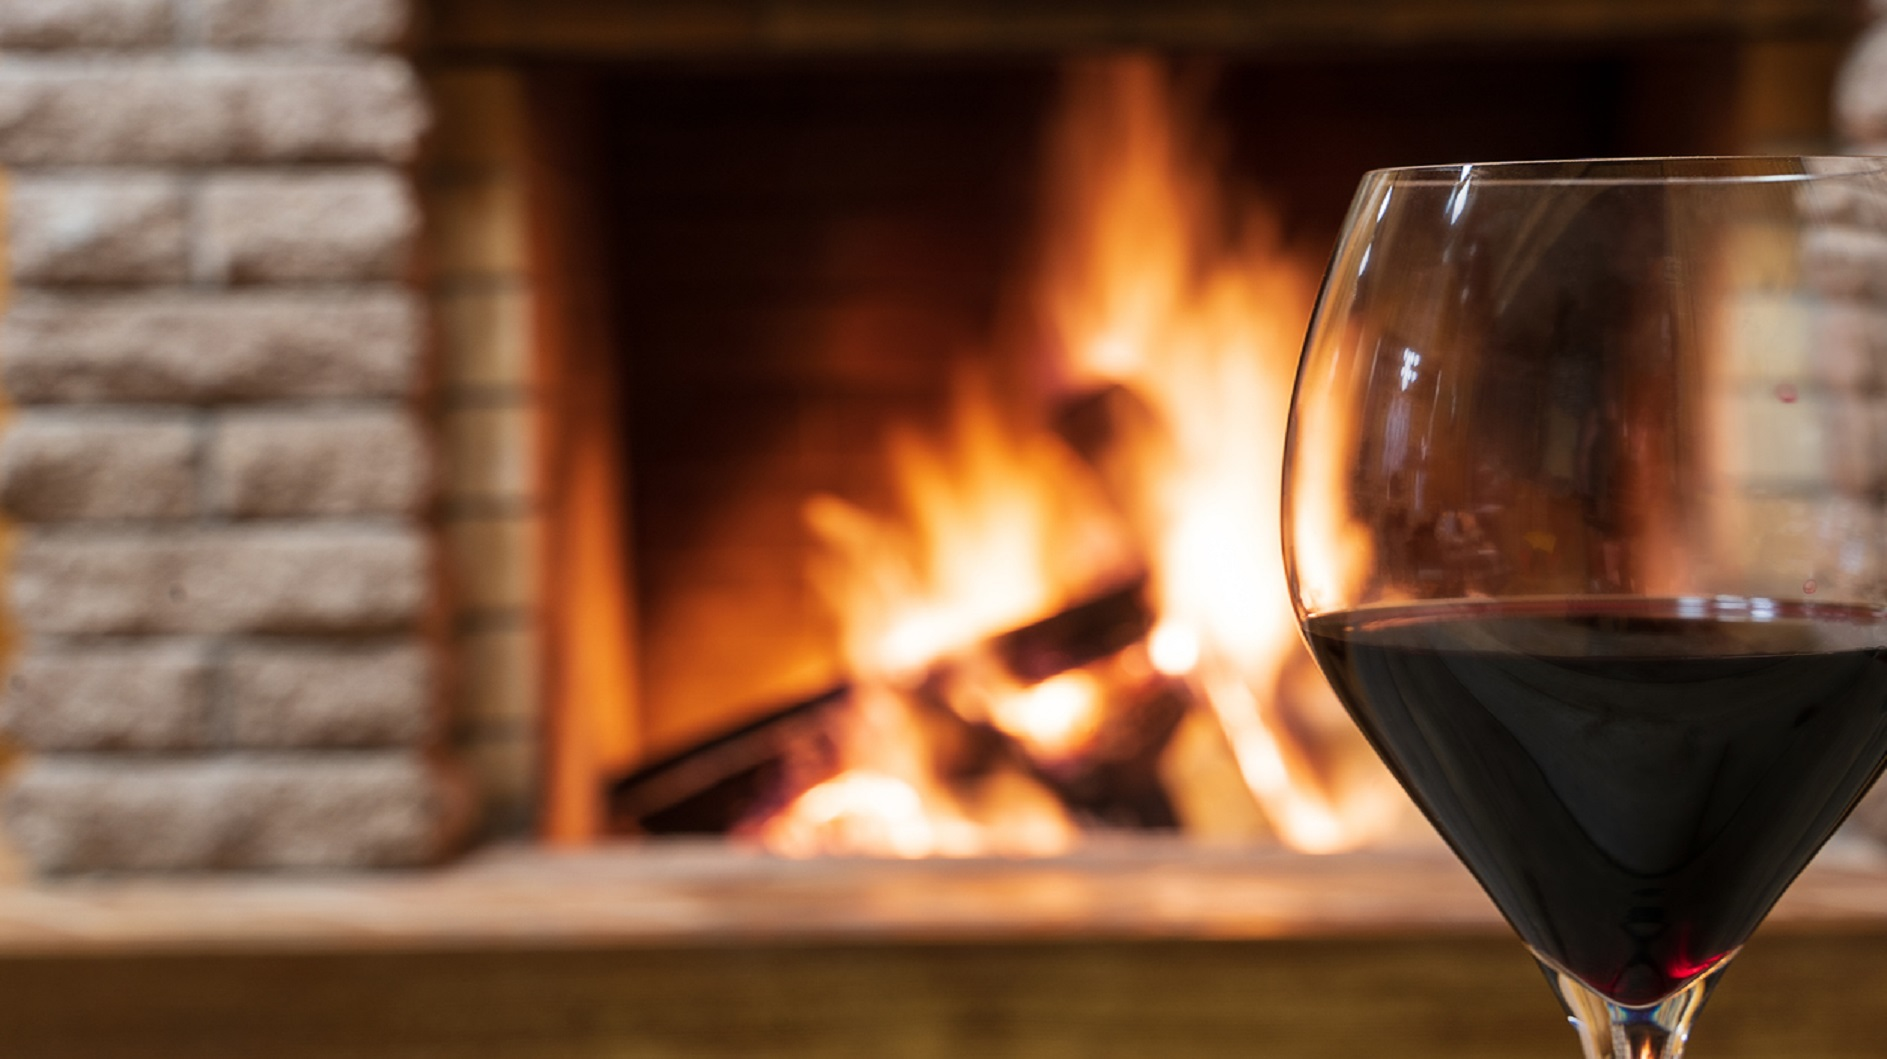 What Are The Best Fuel Options for an Open Fire?